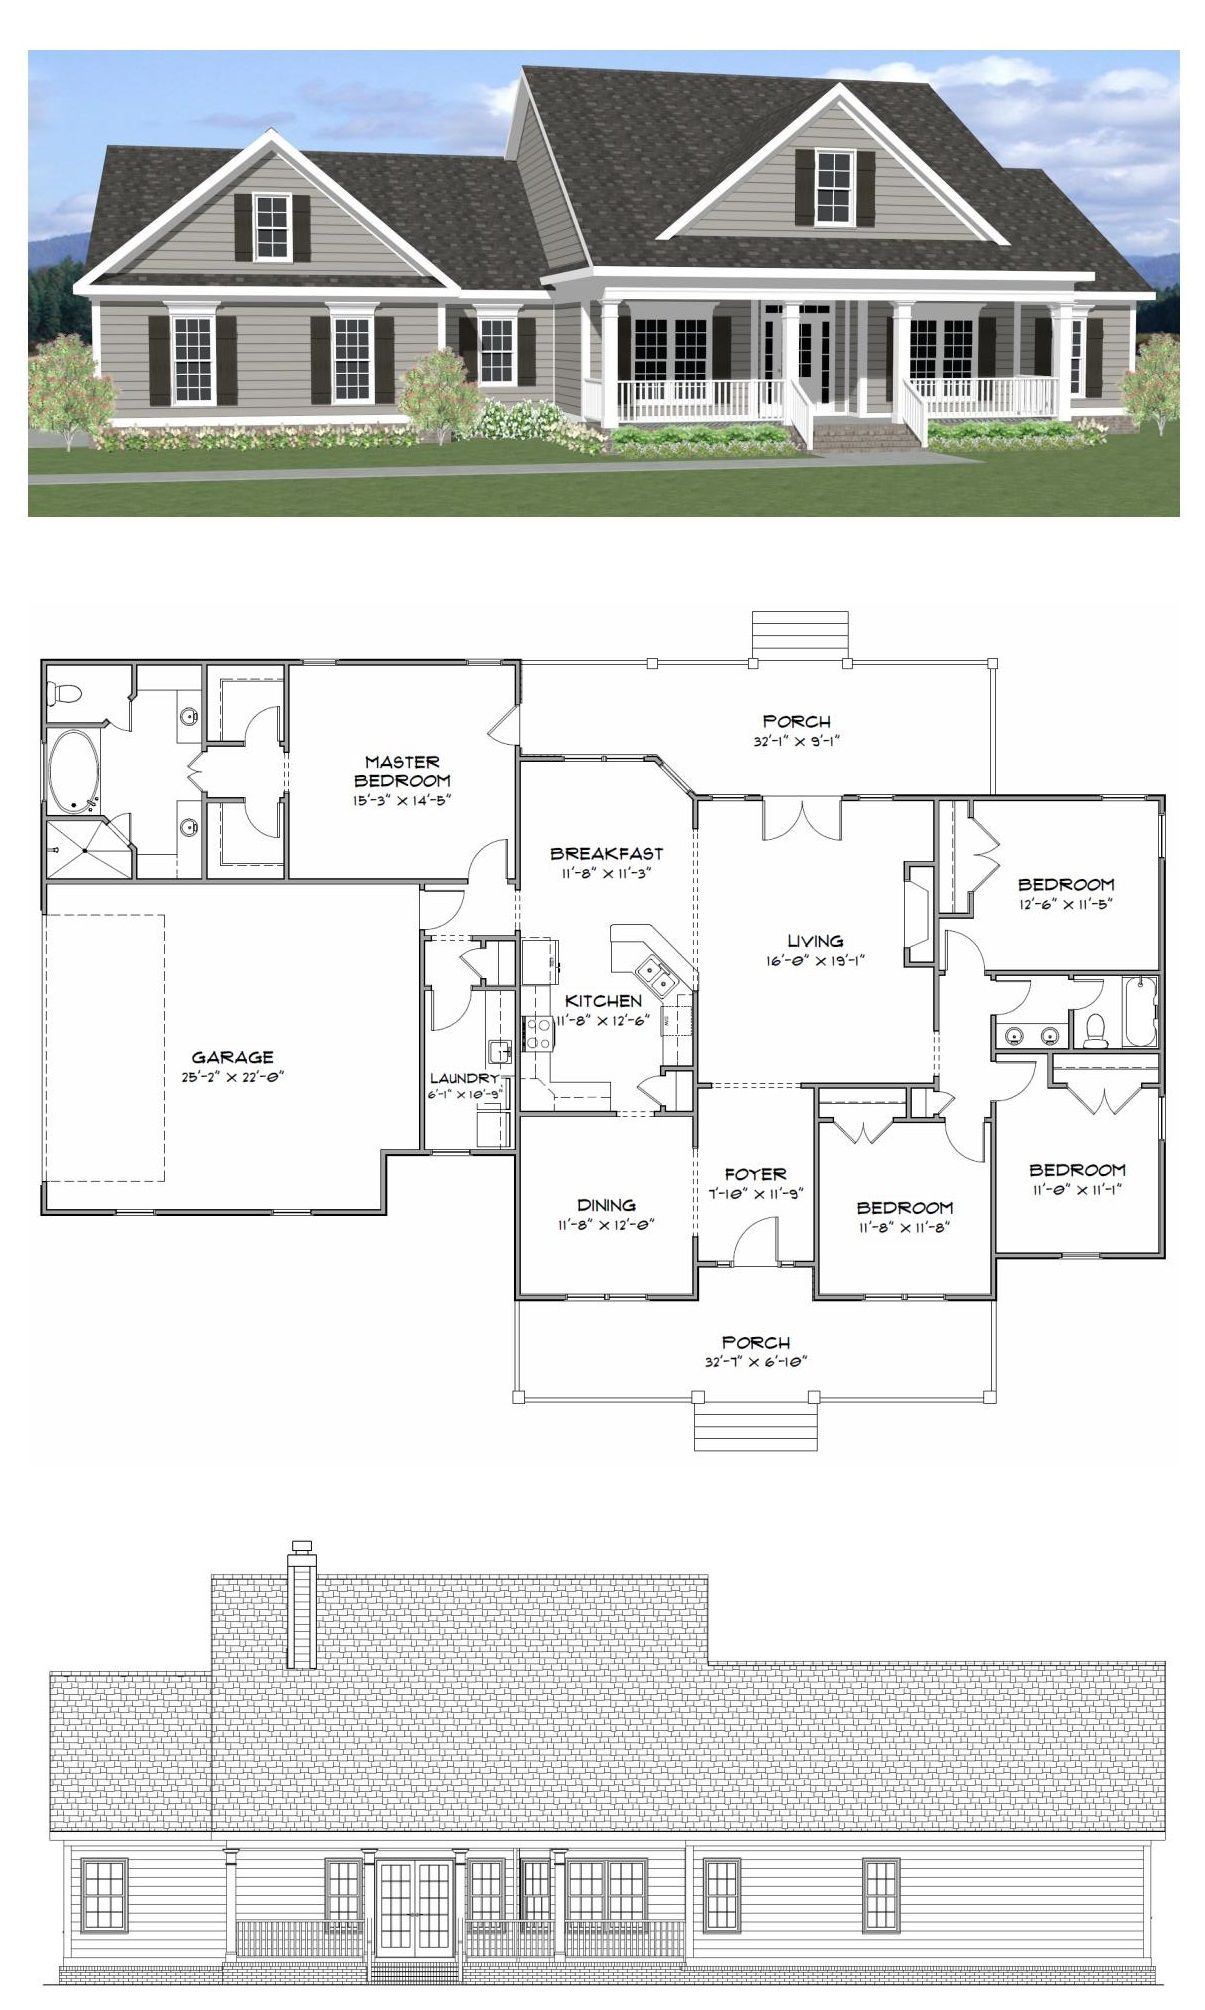 Plan Sc 2081 750 4 Bedroom 2 Bath Home With 2081 Heated Square Feet This Home Plan Is One Of Our Mo New House Plans House Plans Farmhouse House Blueprints